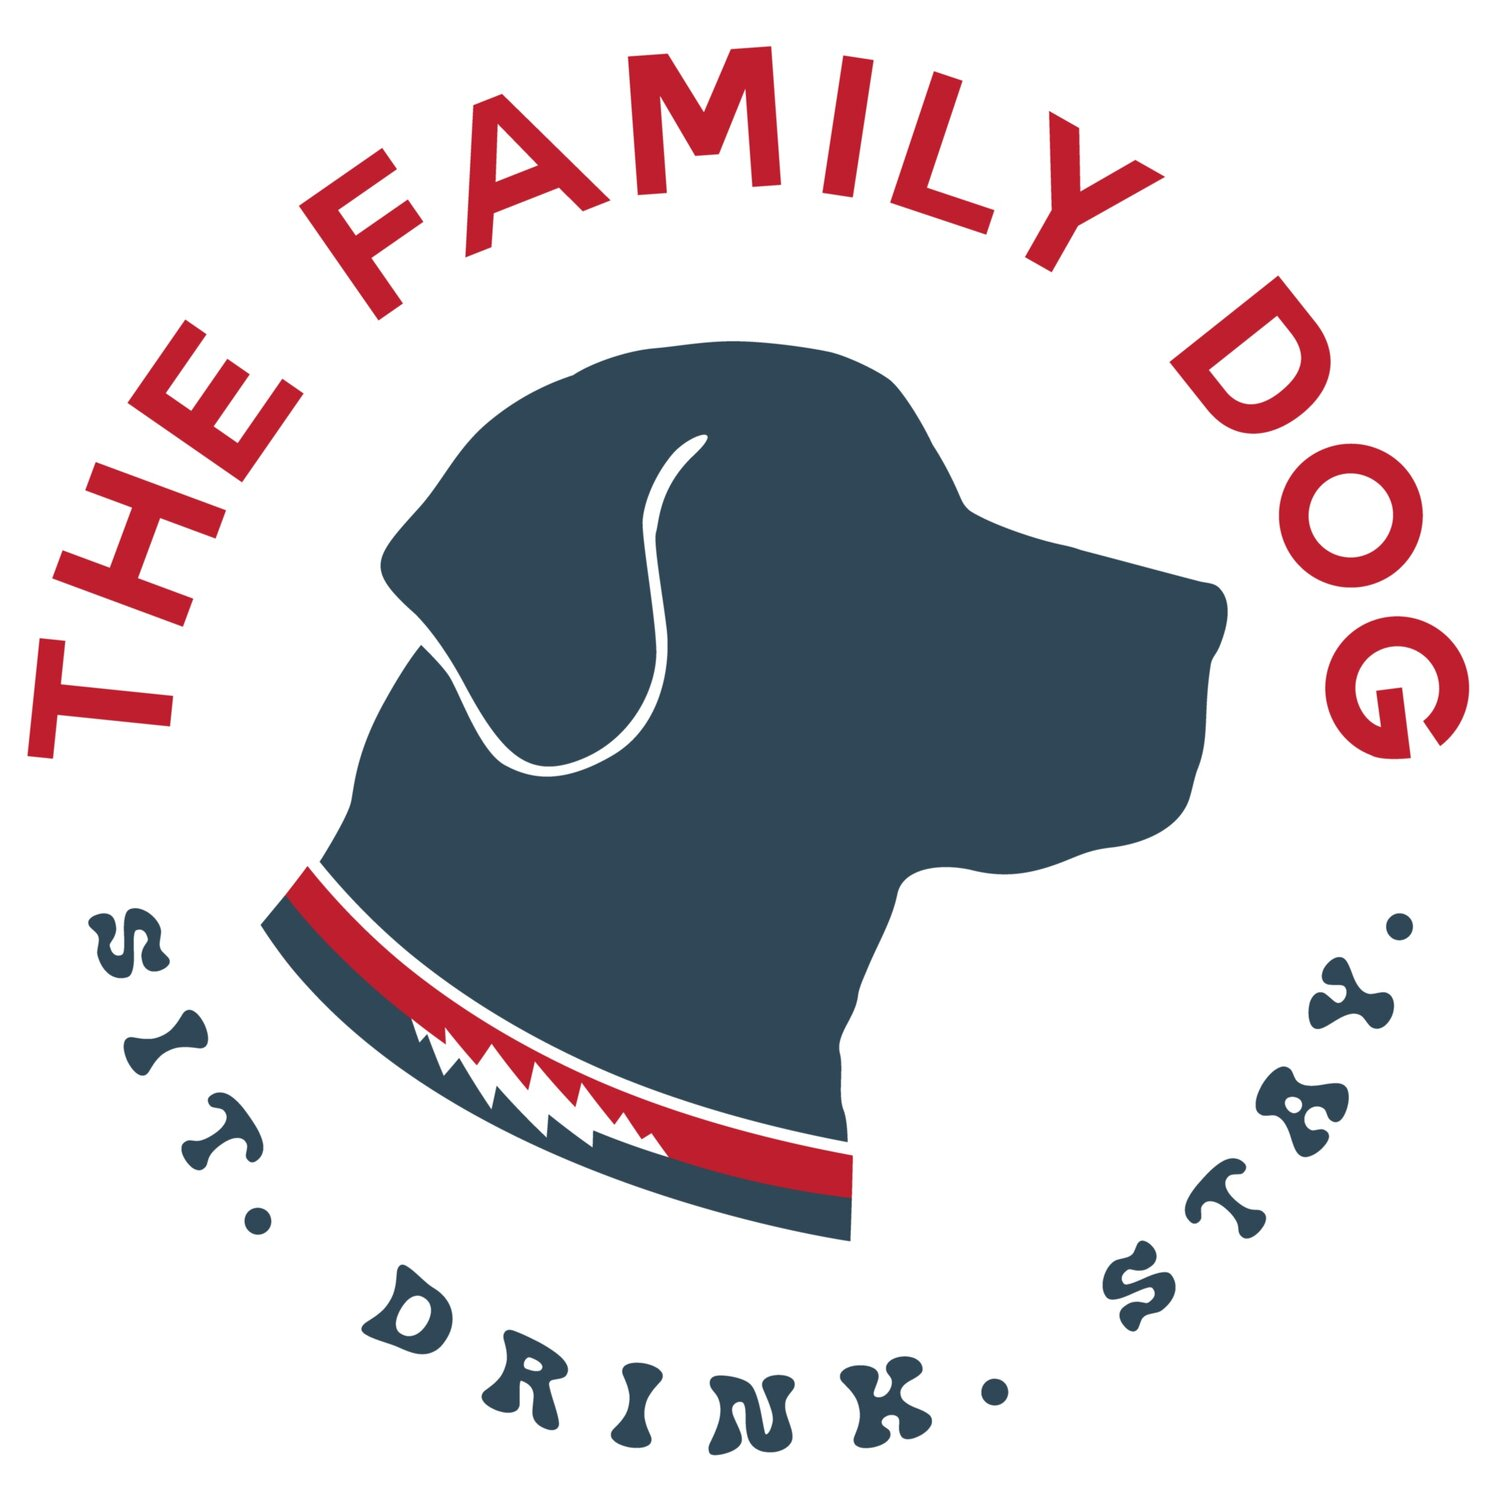 The Family Dog - Your neighborhood Pub